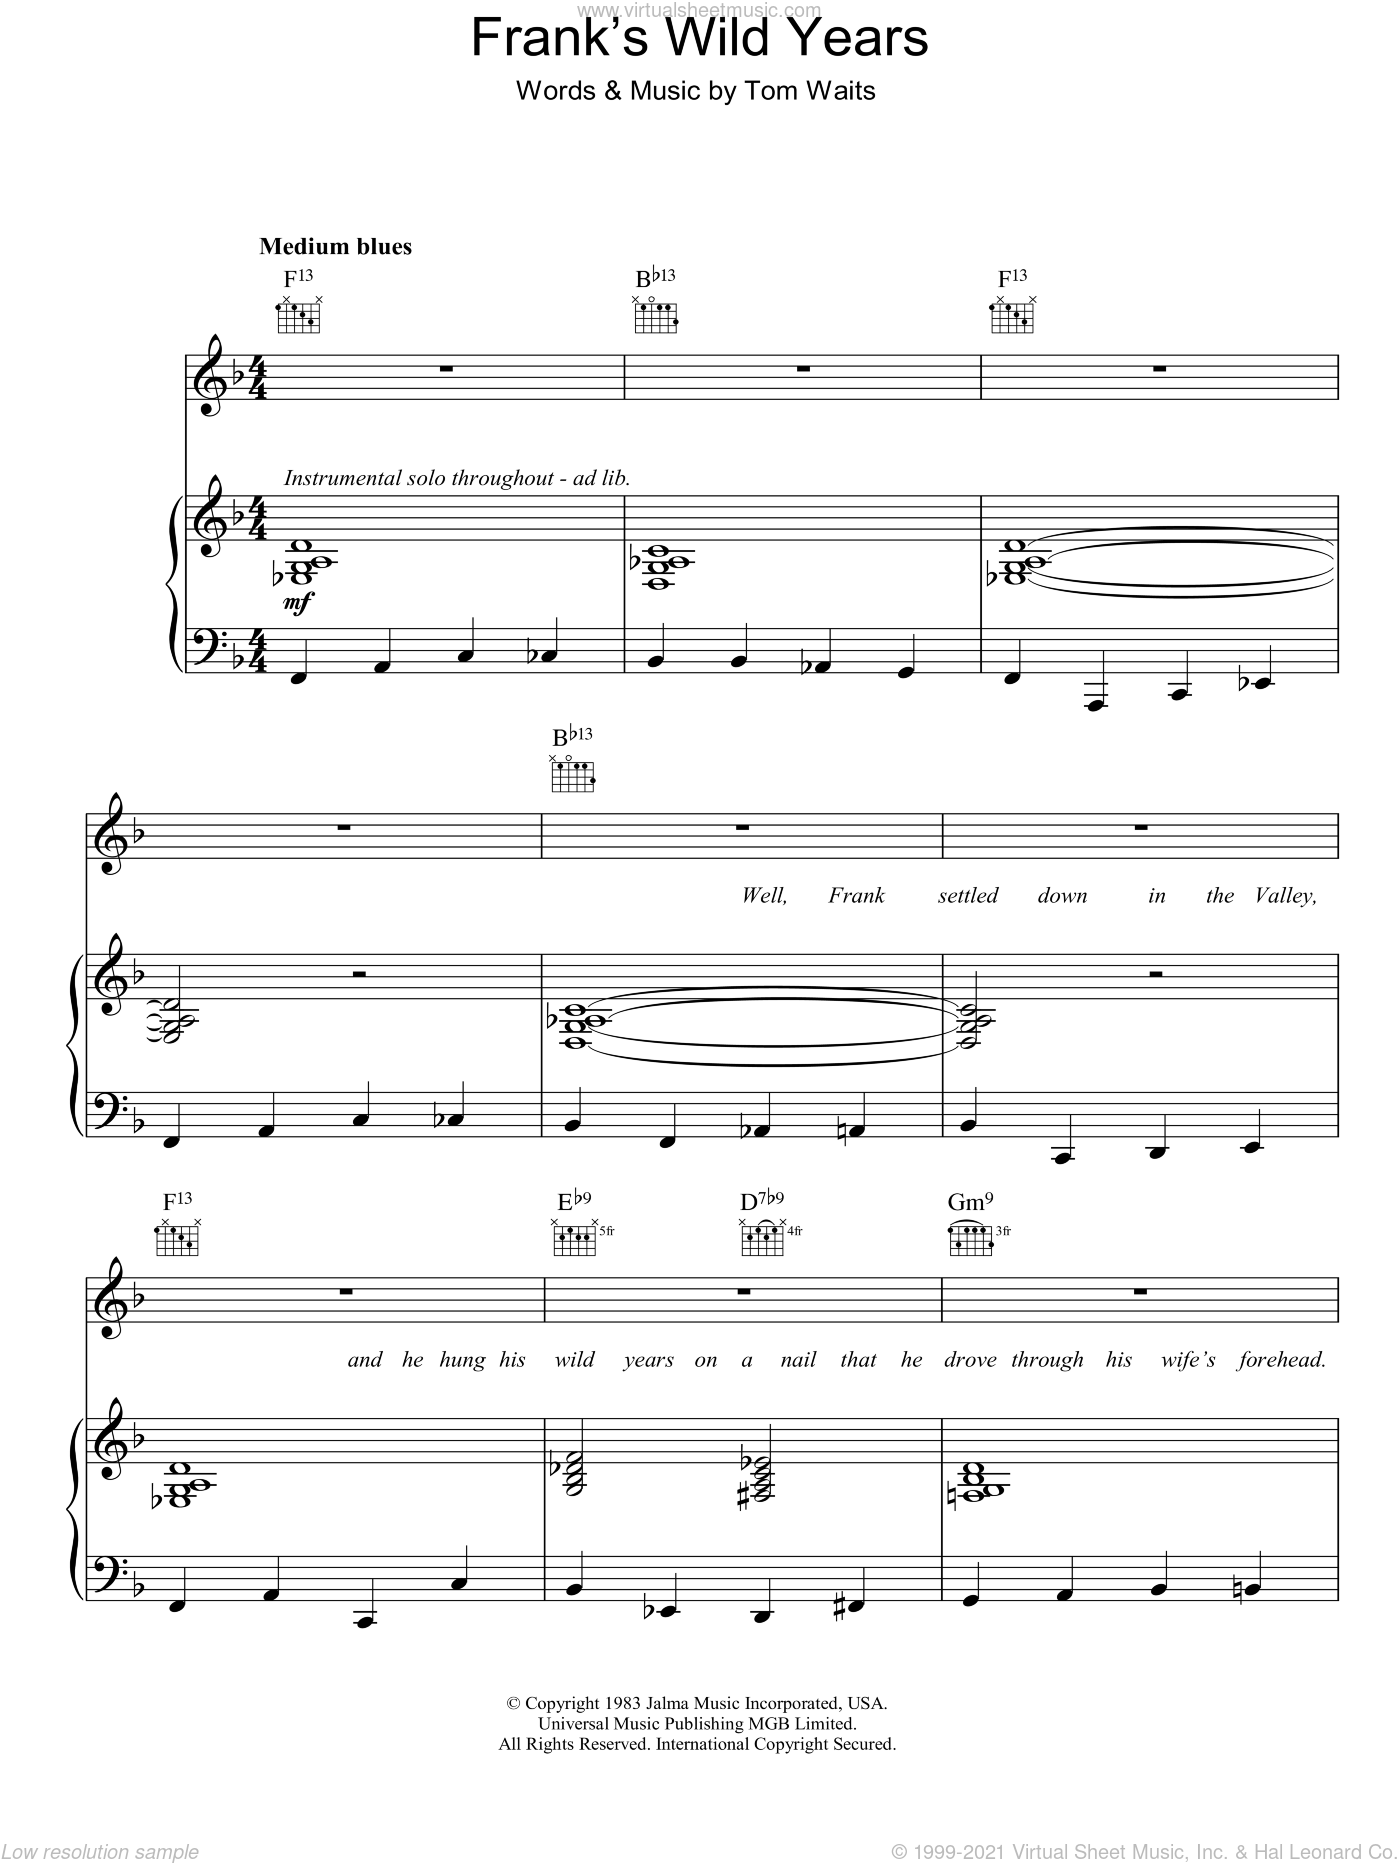 Frank's Wild Years sheet music for voice, piano or guitar by Tom Waits